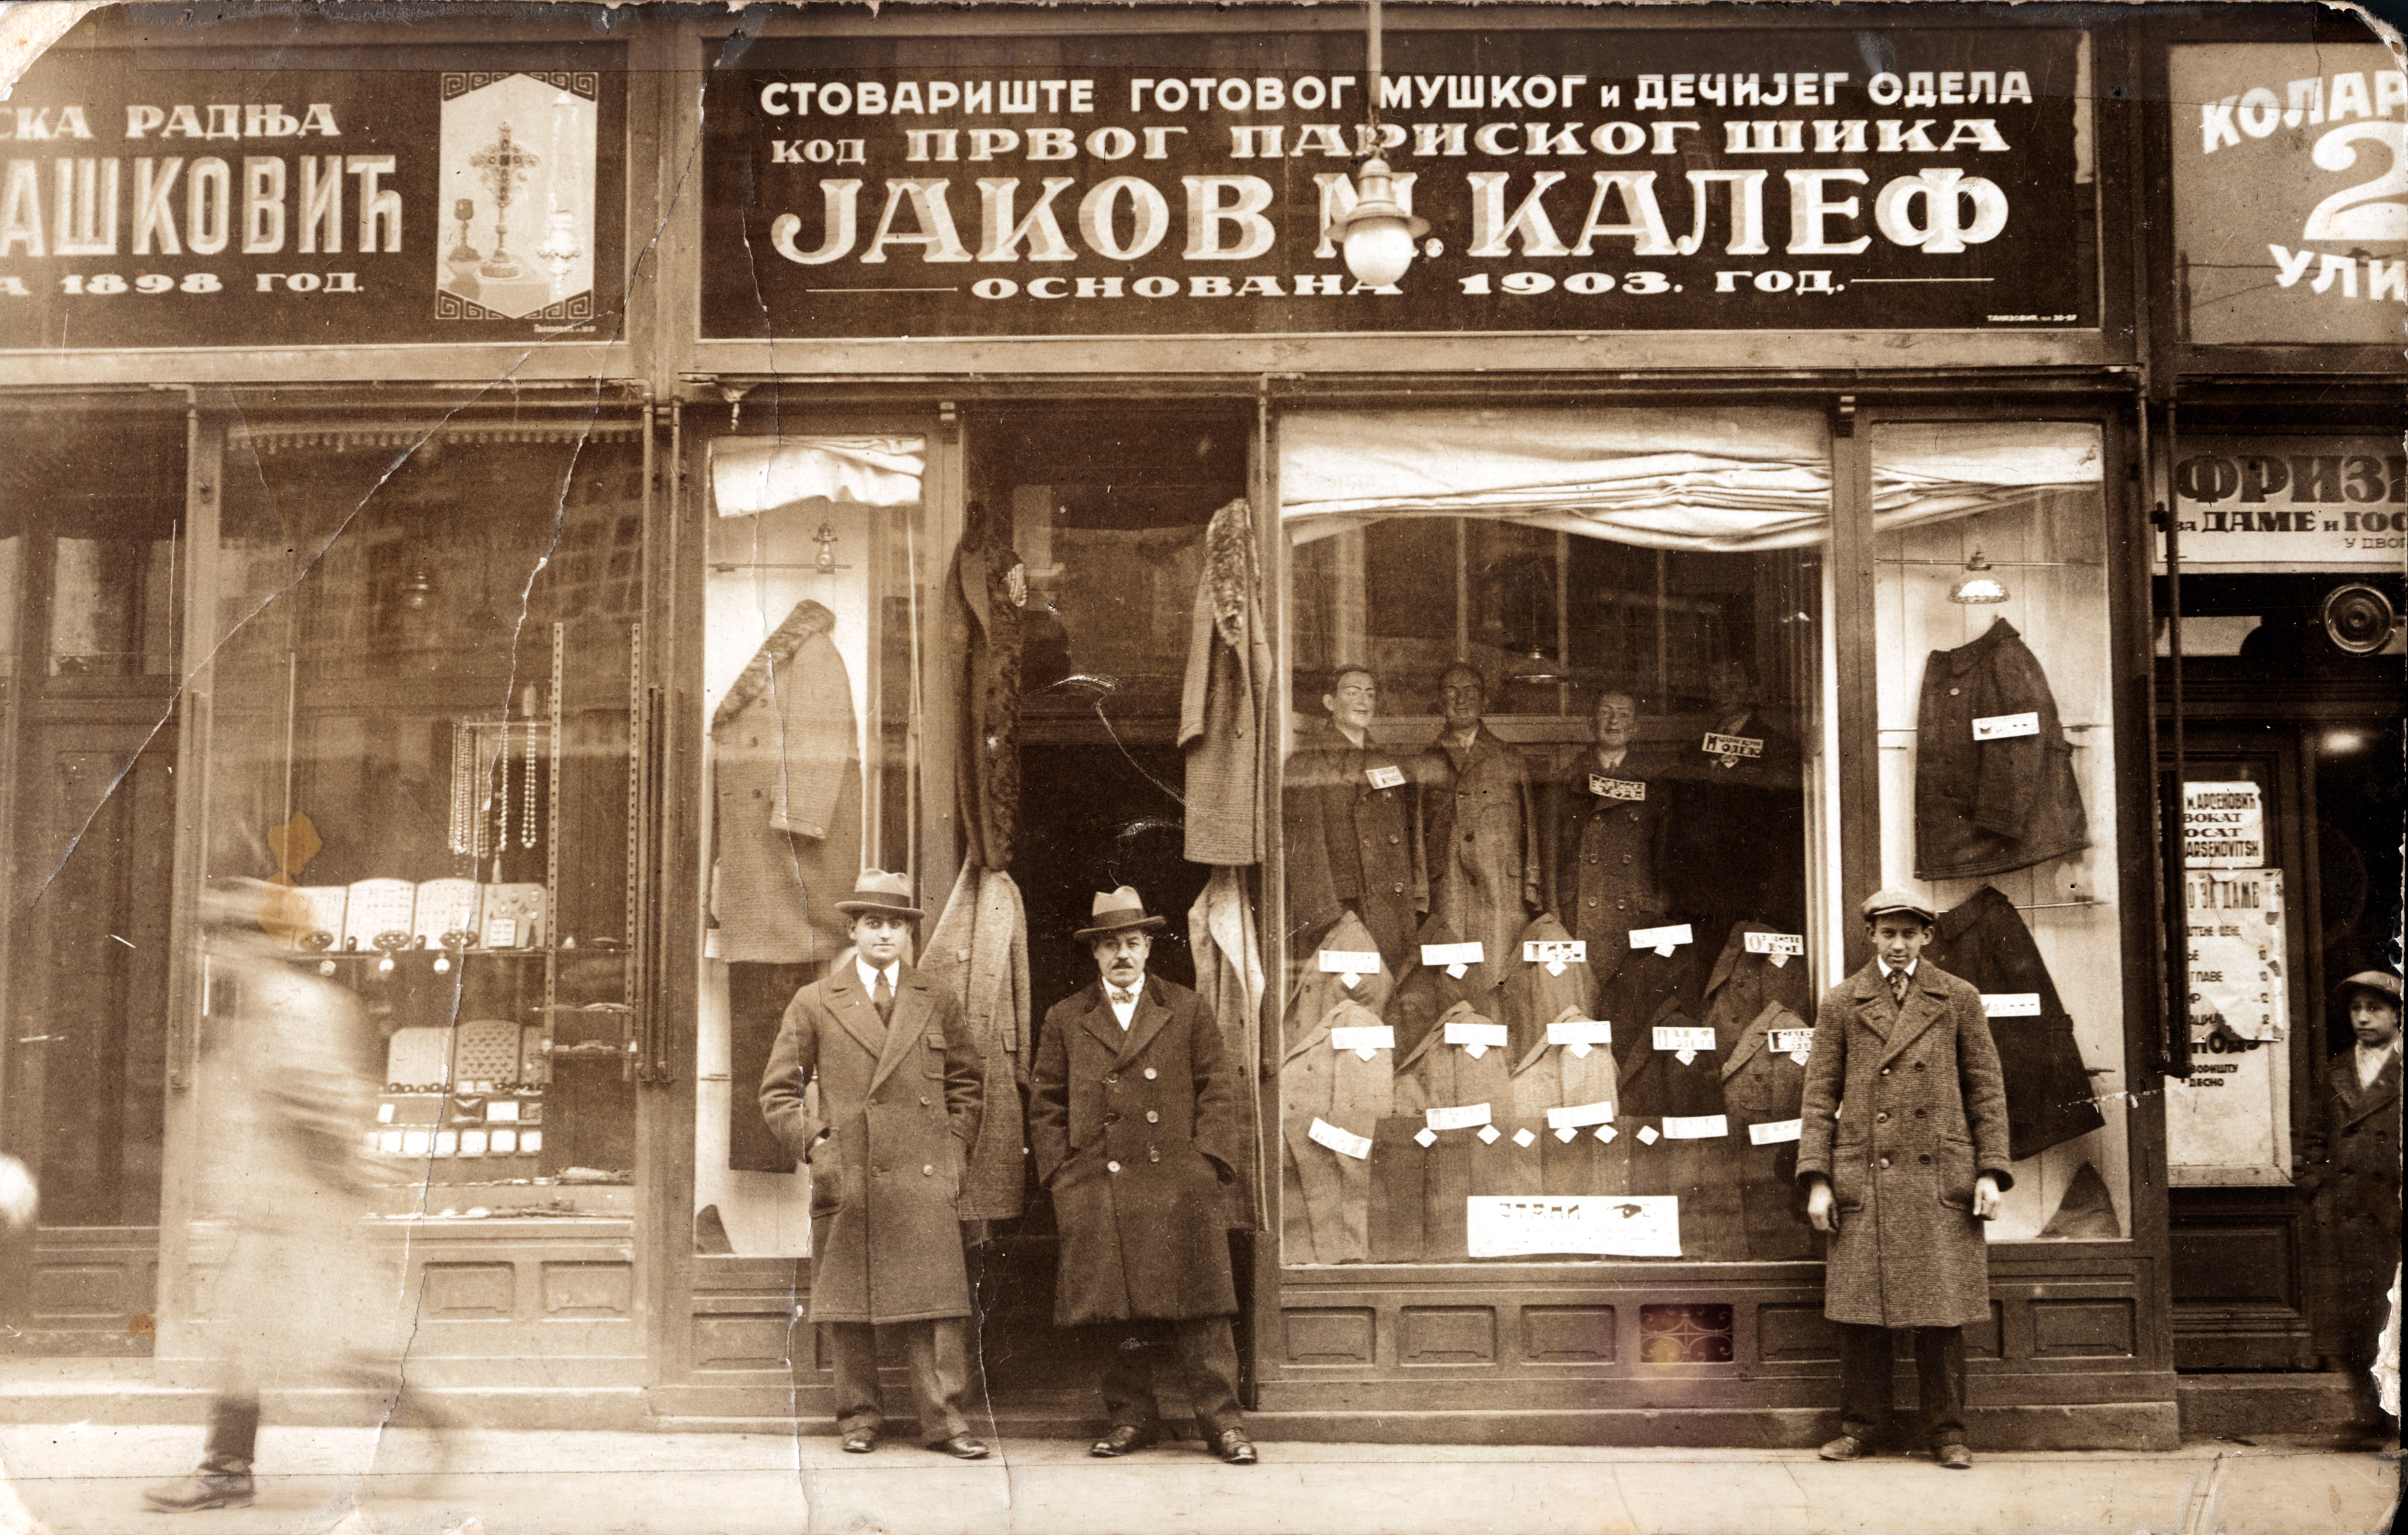 Jakov Kalef in front of his store